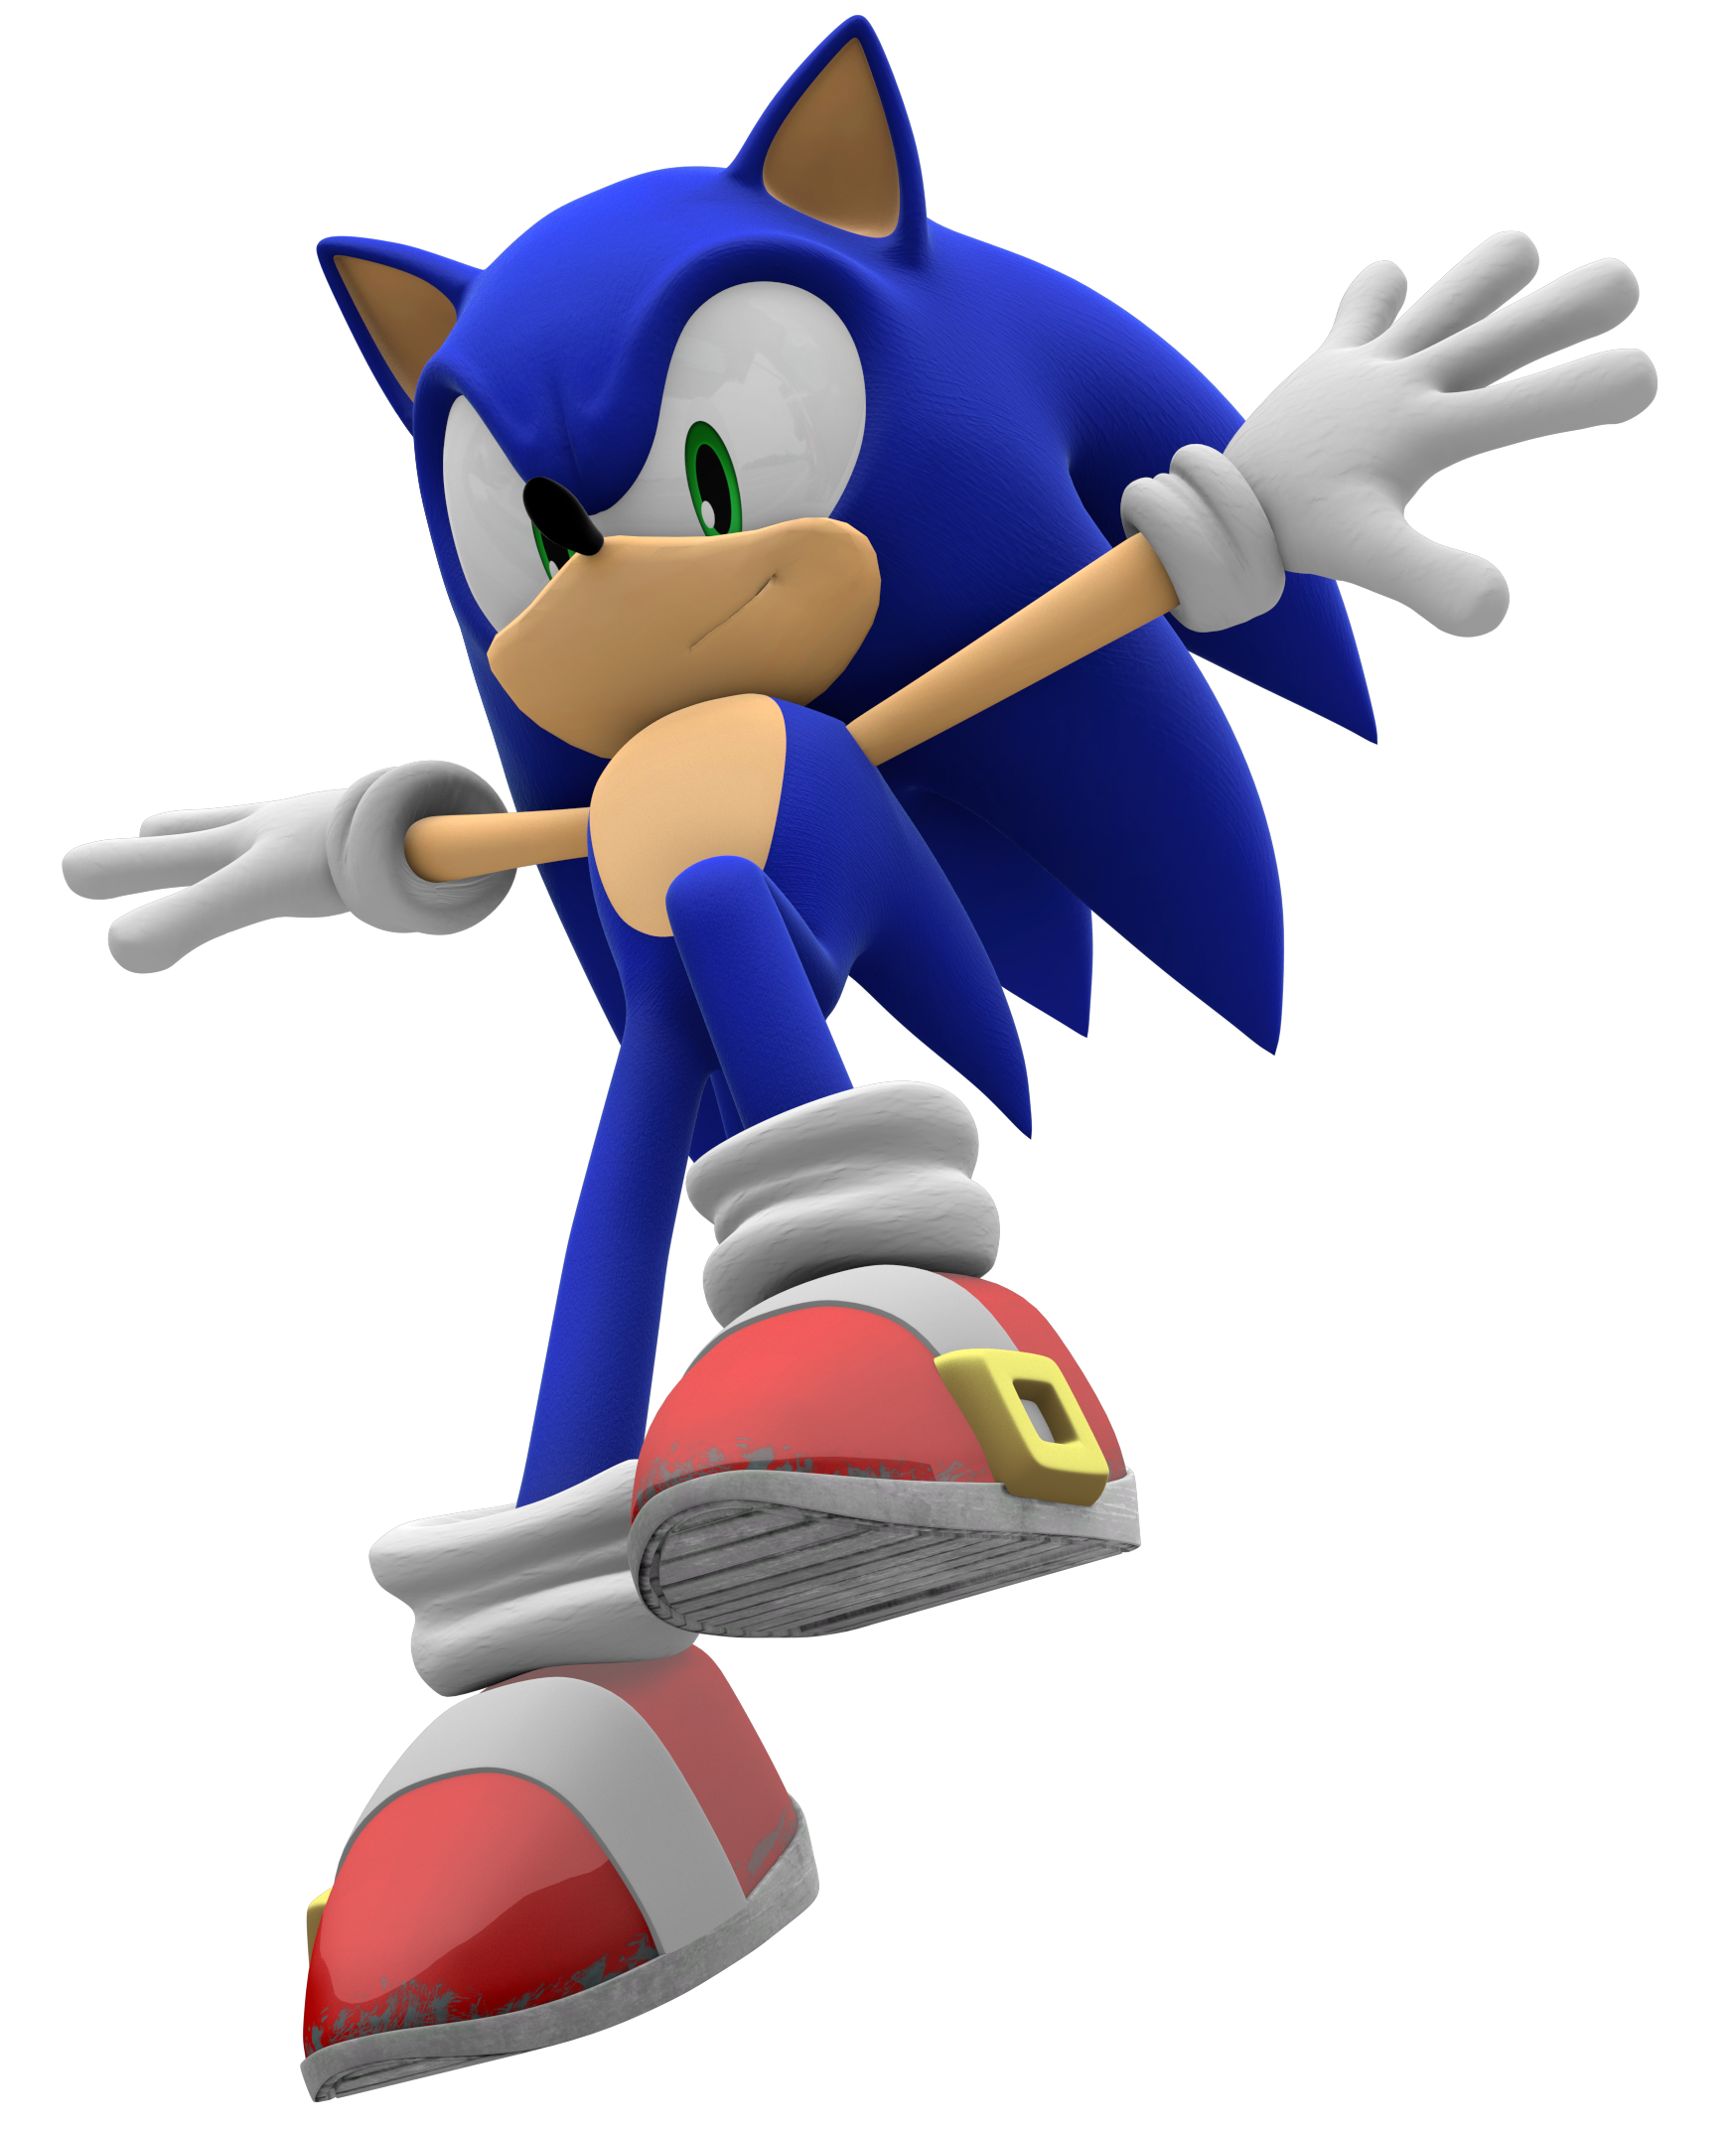 Image removal request use the form below to delete this sonic -  Image Removal Request Use The Form Below To Delete This Falling Sonic